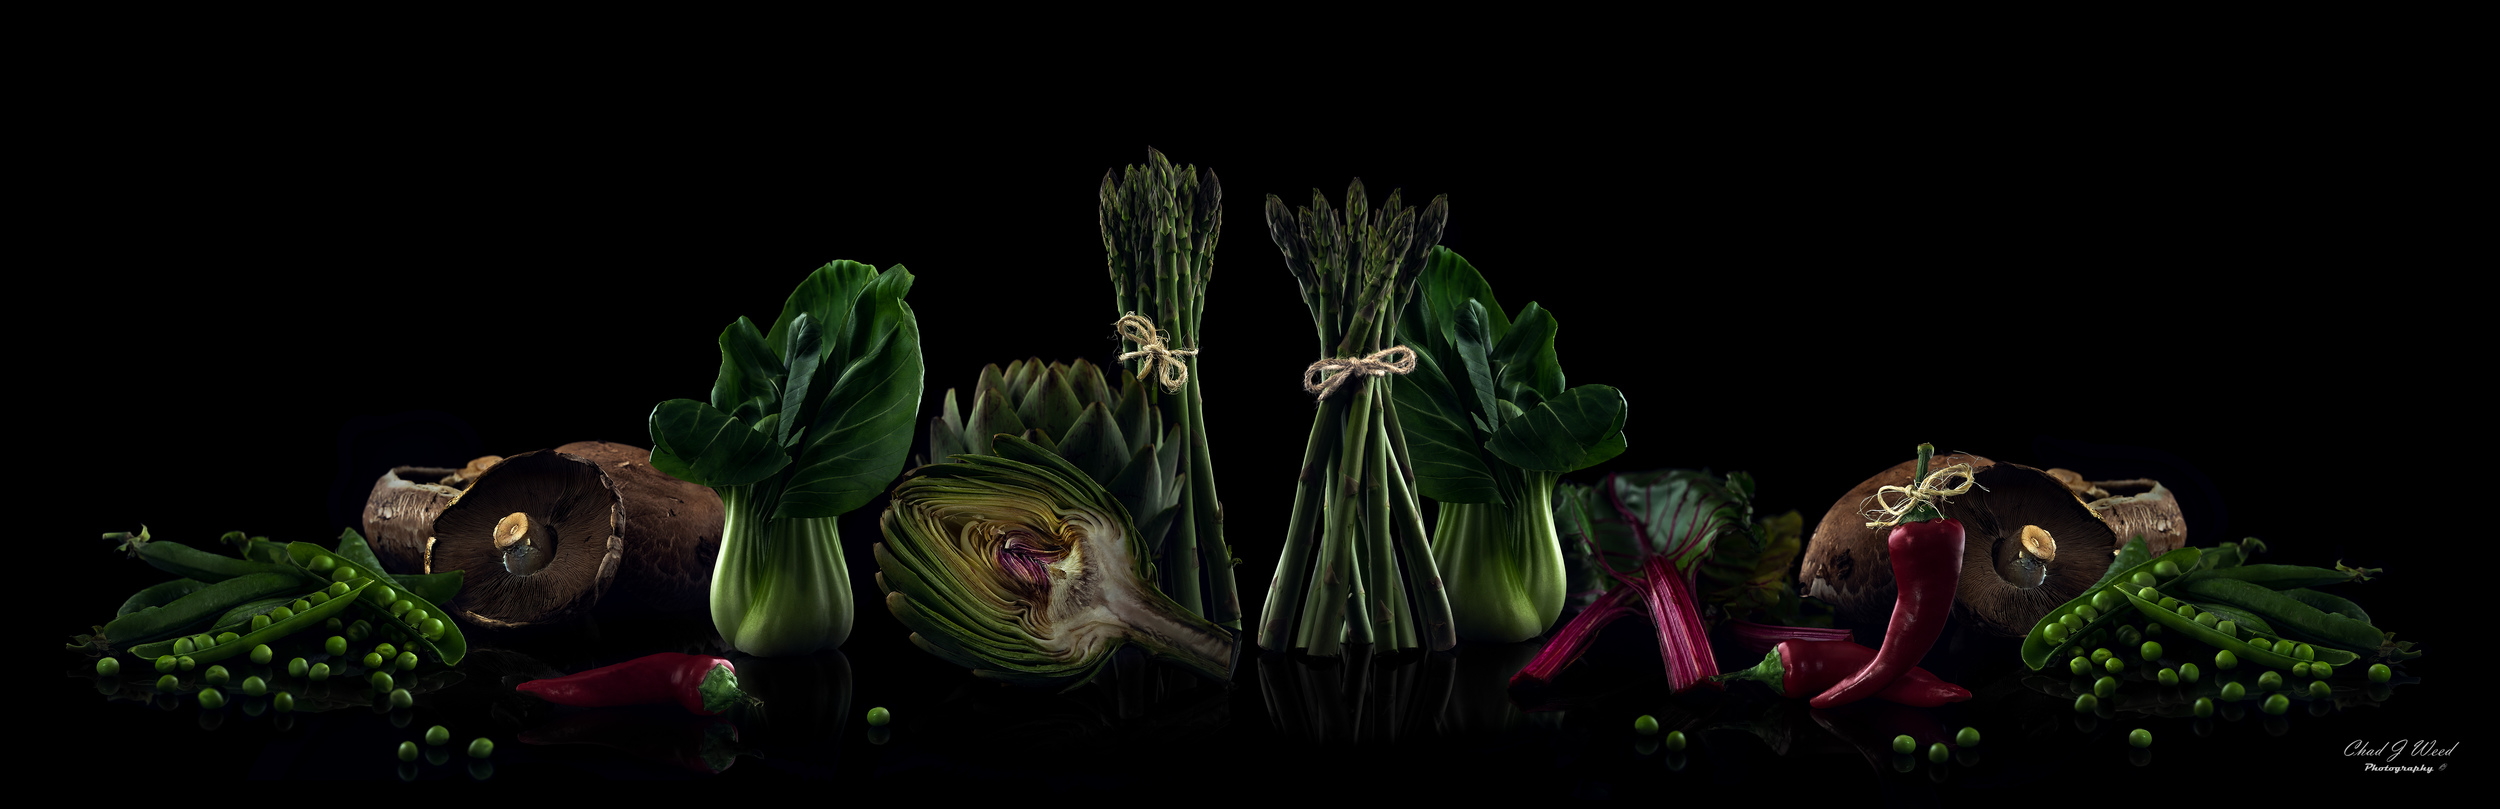 Vegetable Feast by Arizona Commercial Food Photographer Chad J Weed